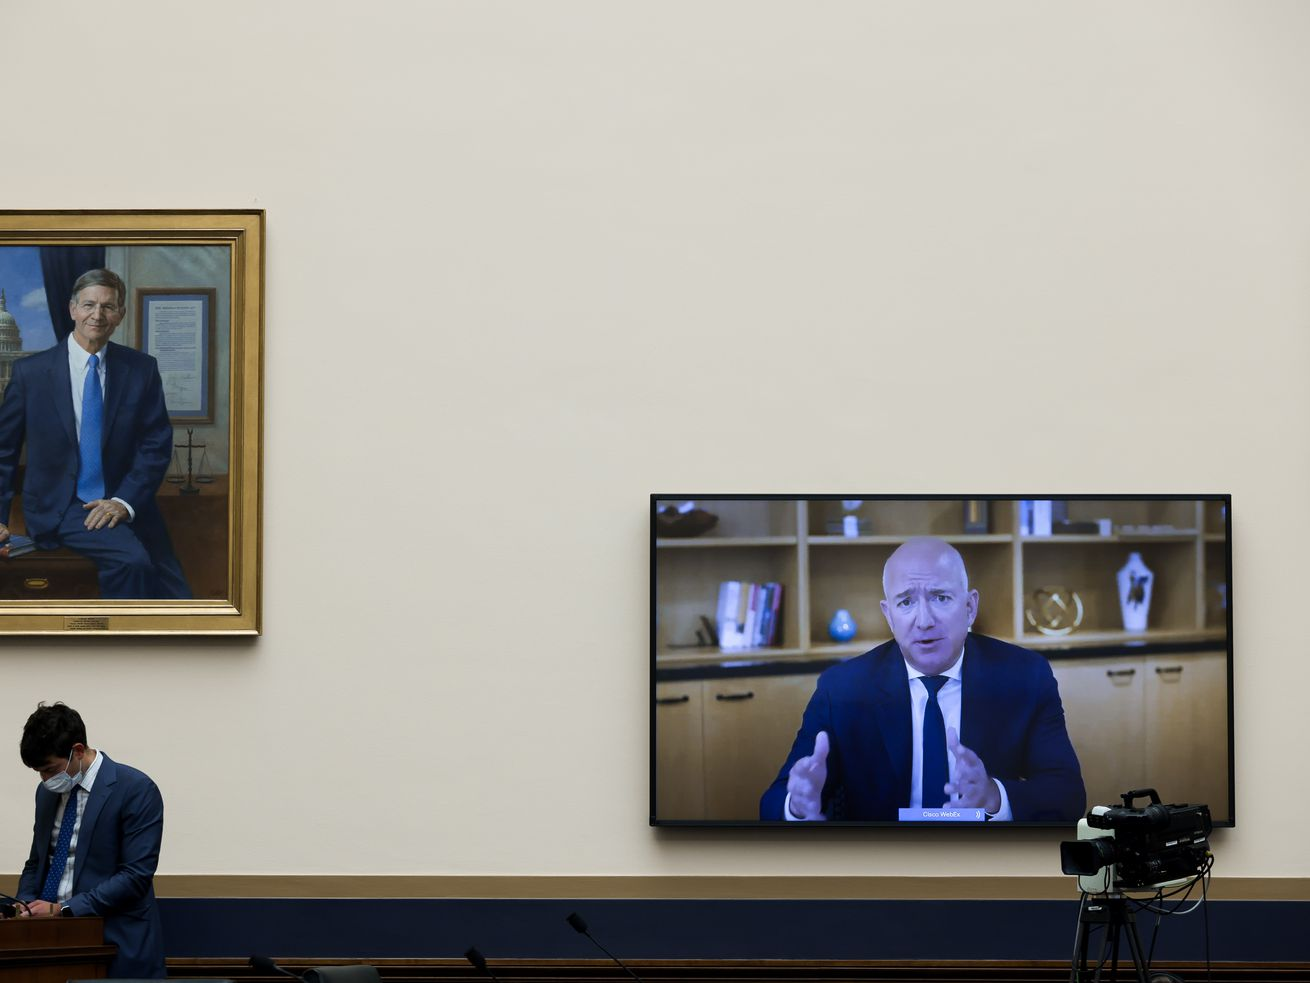 Amazon CEO Jeff Bezos appears on a screen inside the US House of Representatives.